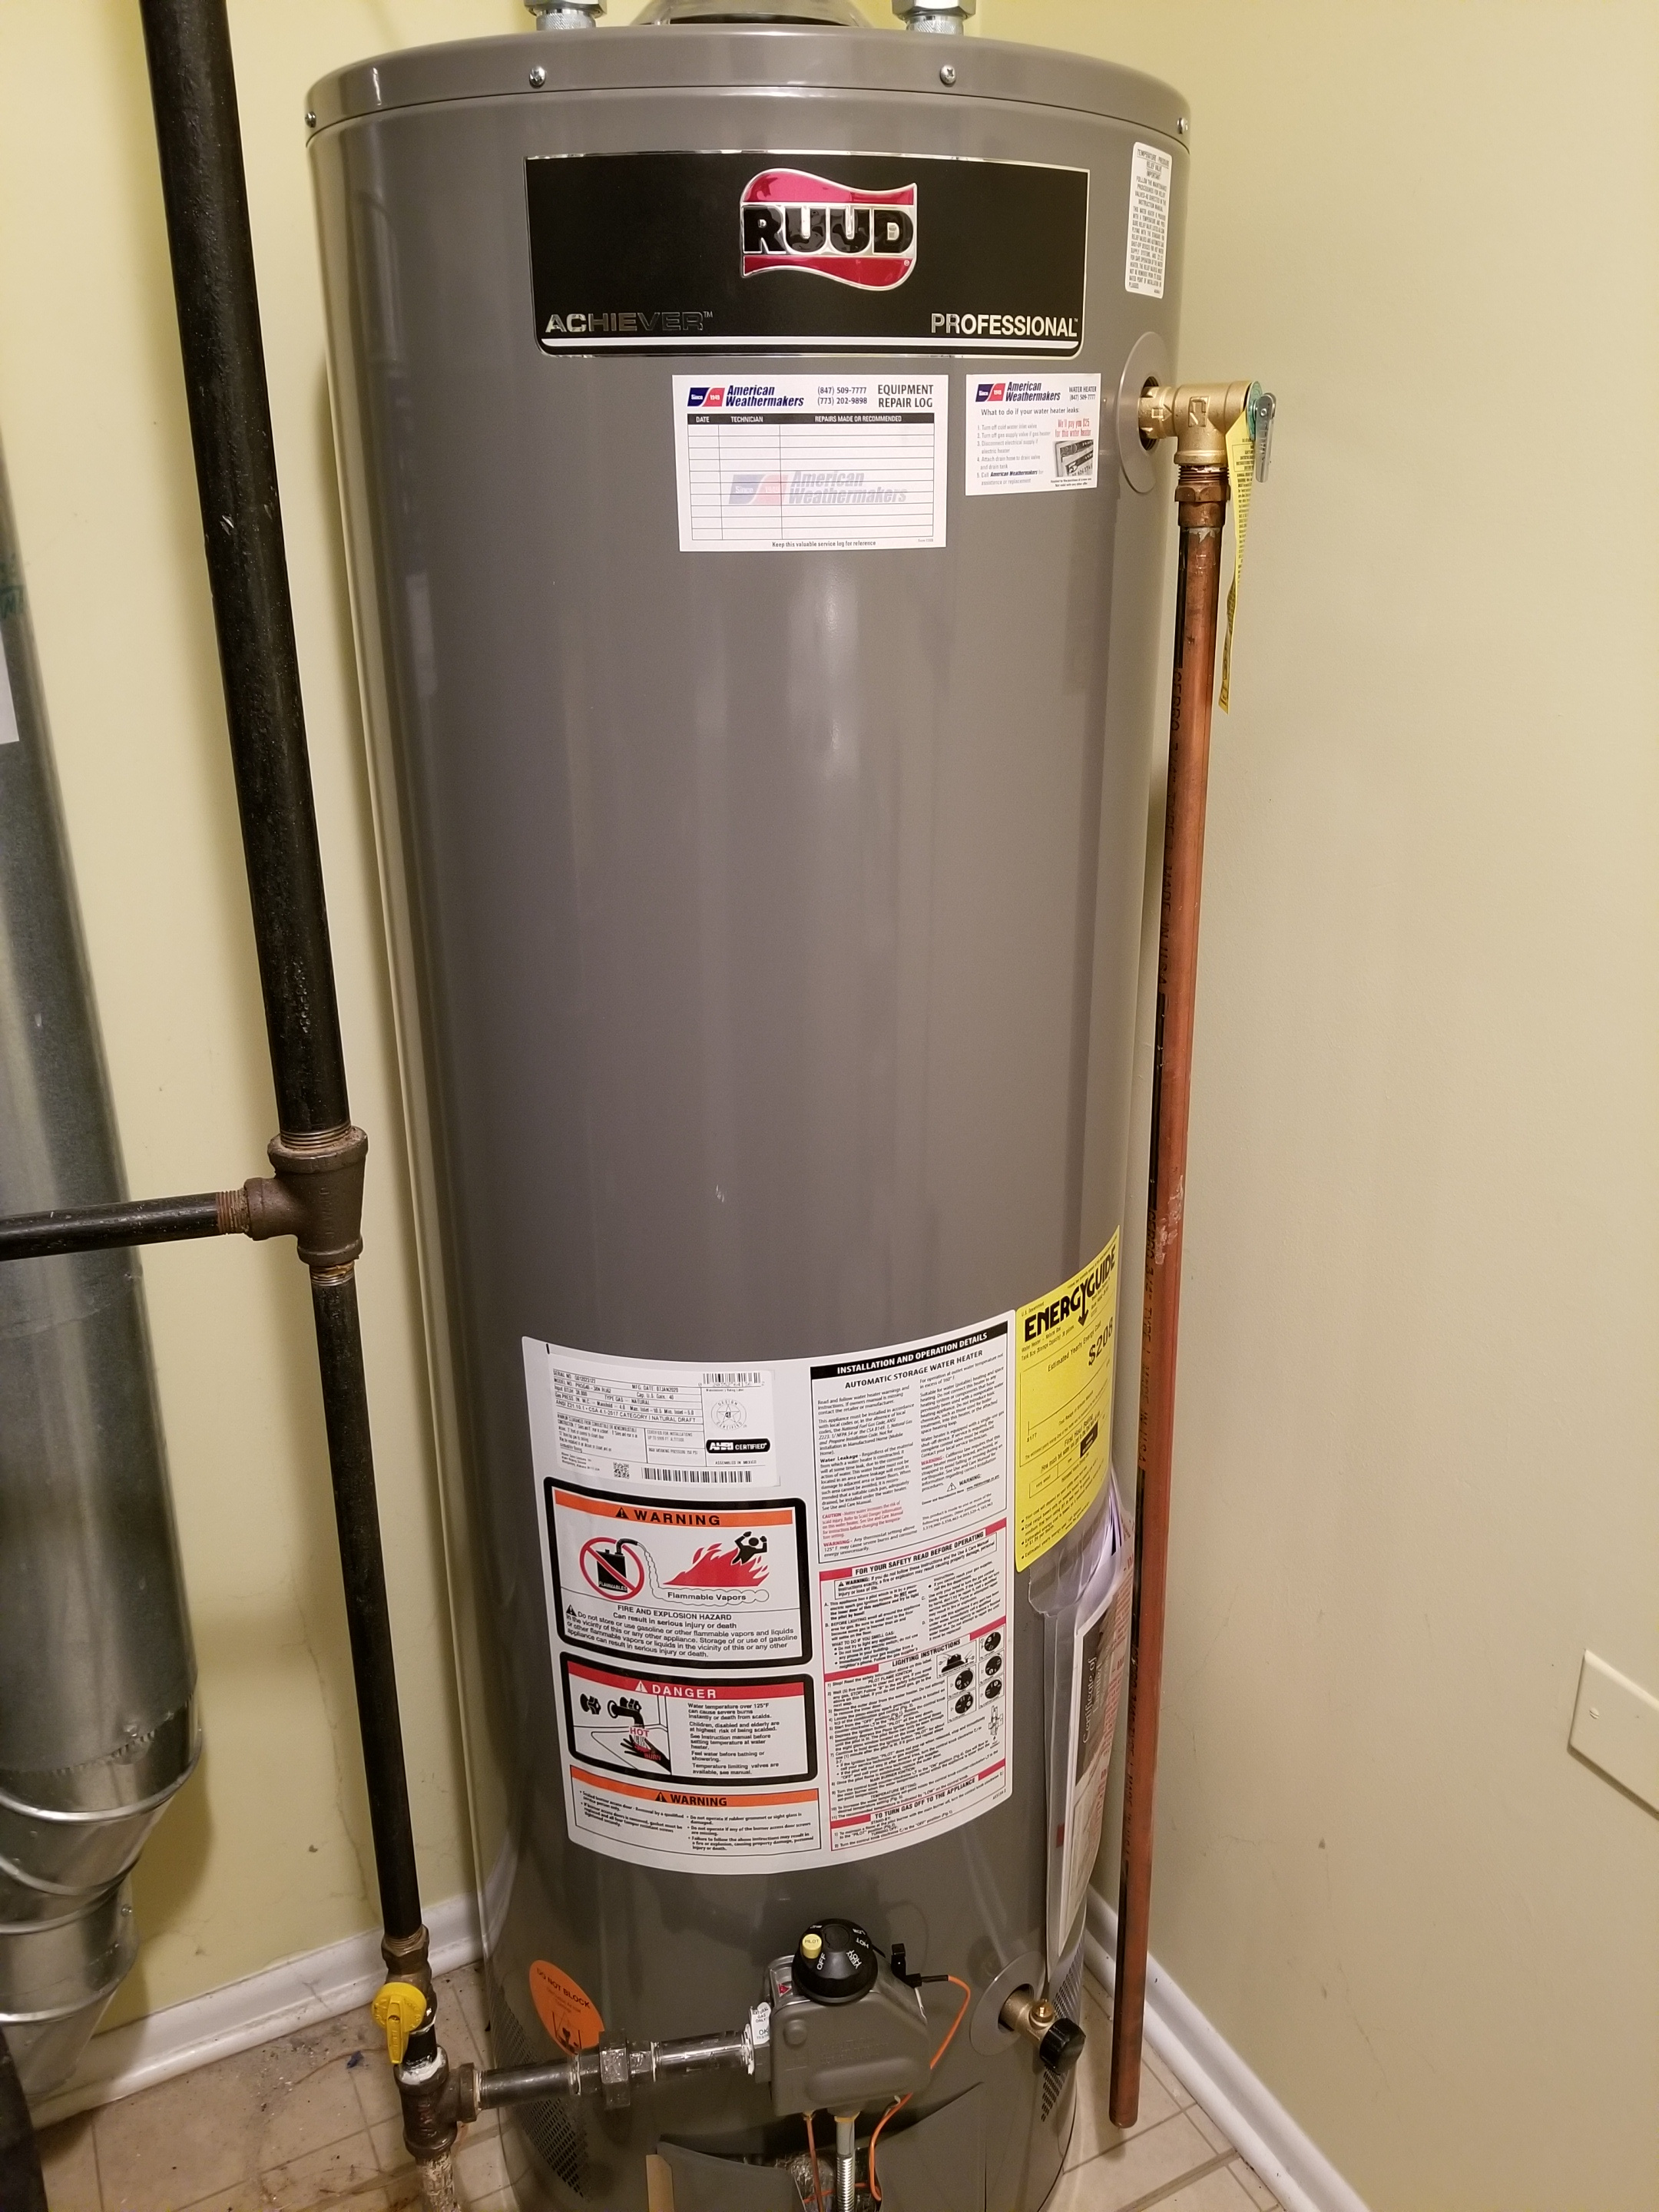 Replaced the old inefficient water heater with a new and more efficient RUUD water heater.